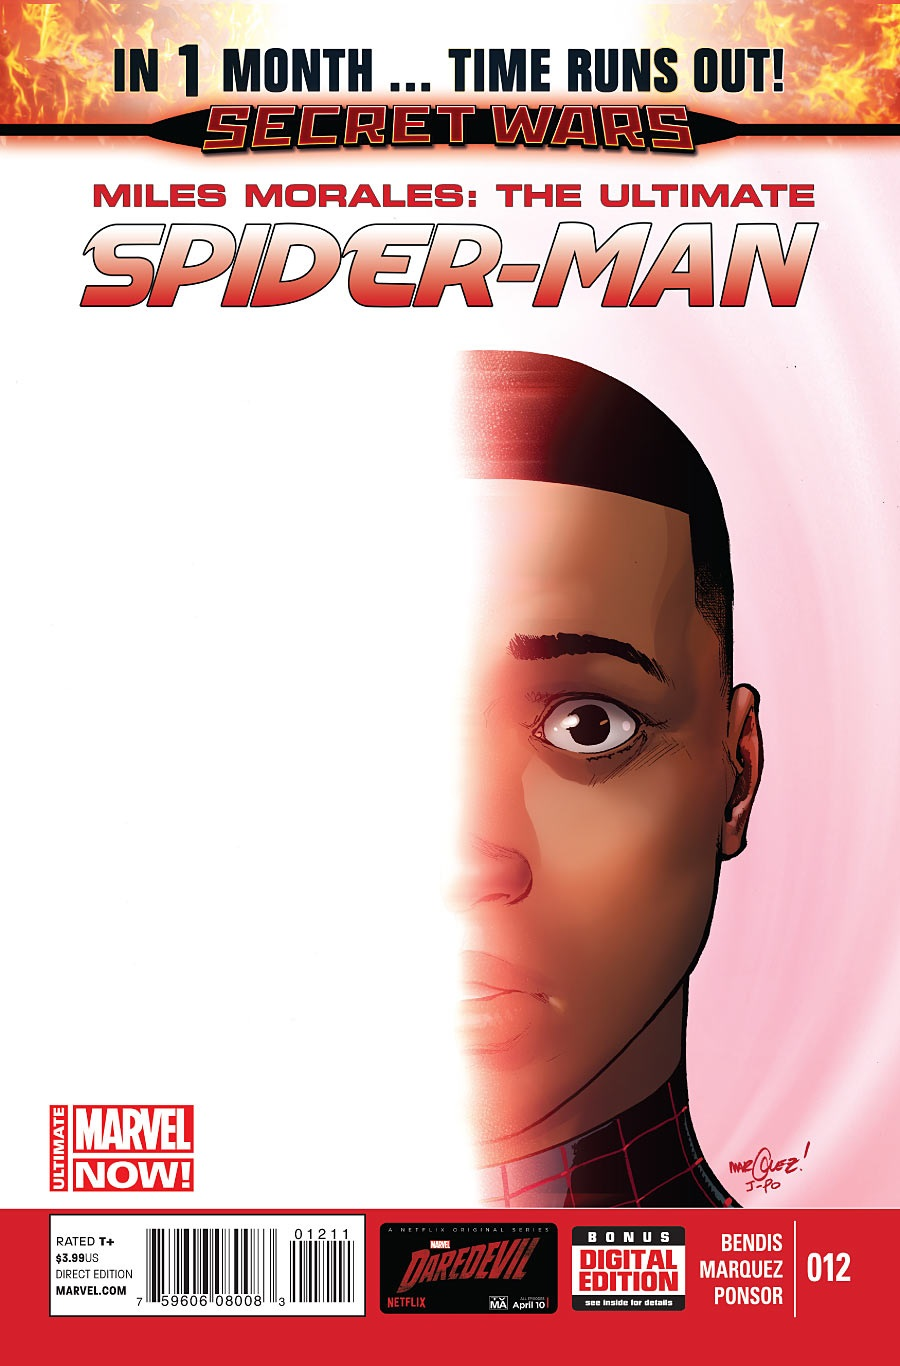 Miles Morales: The Ultimate Spider-Man #12